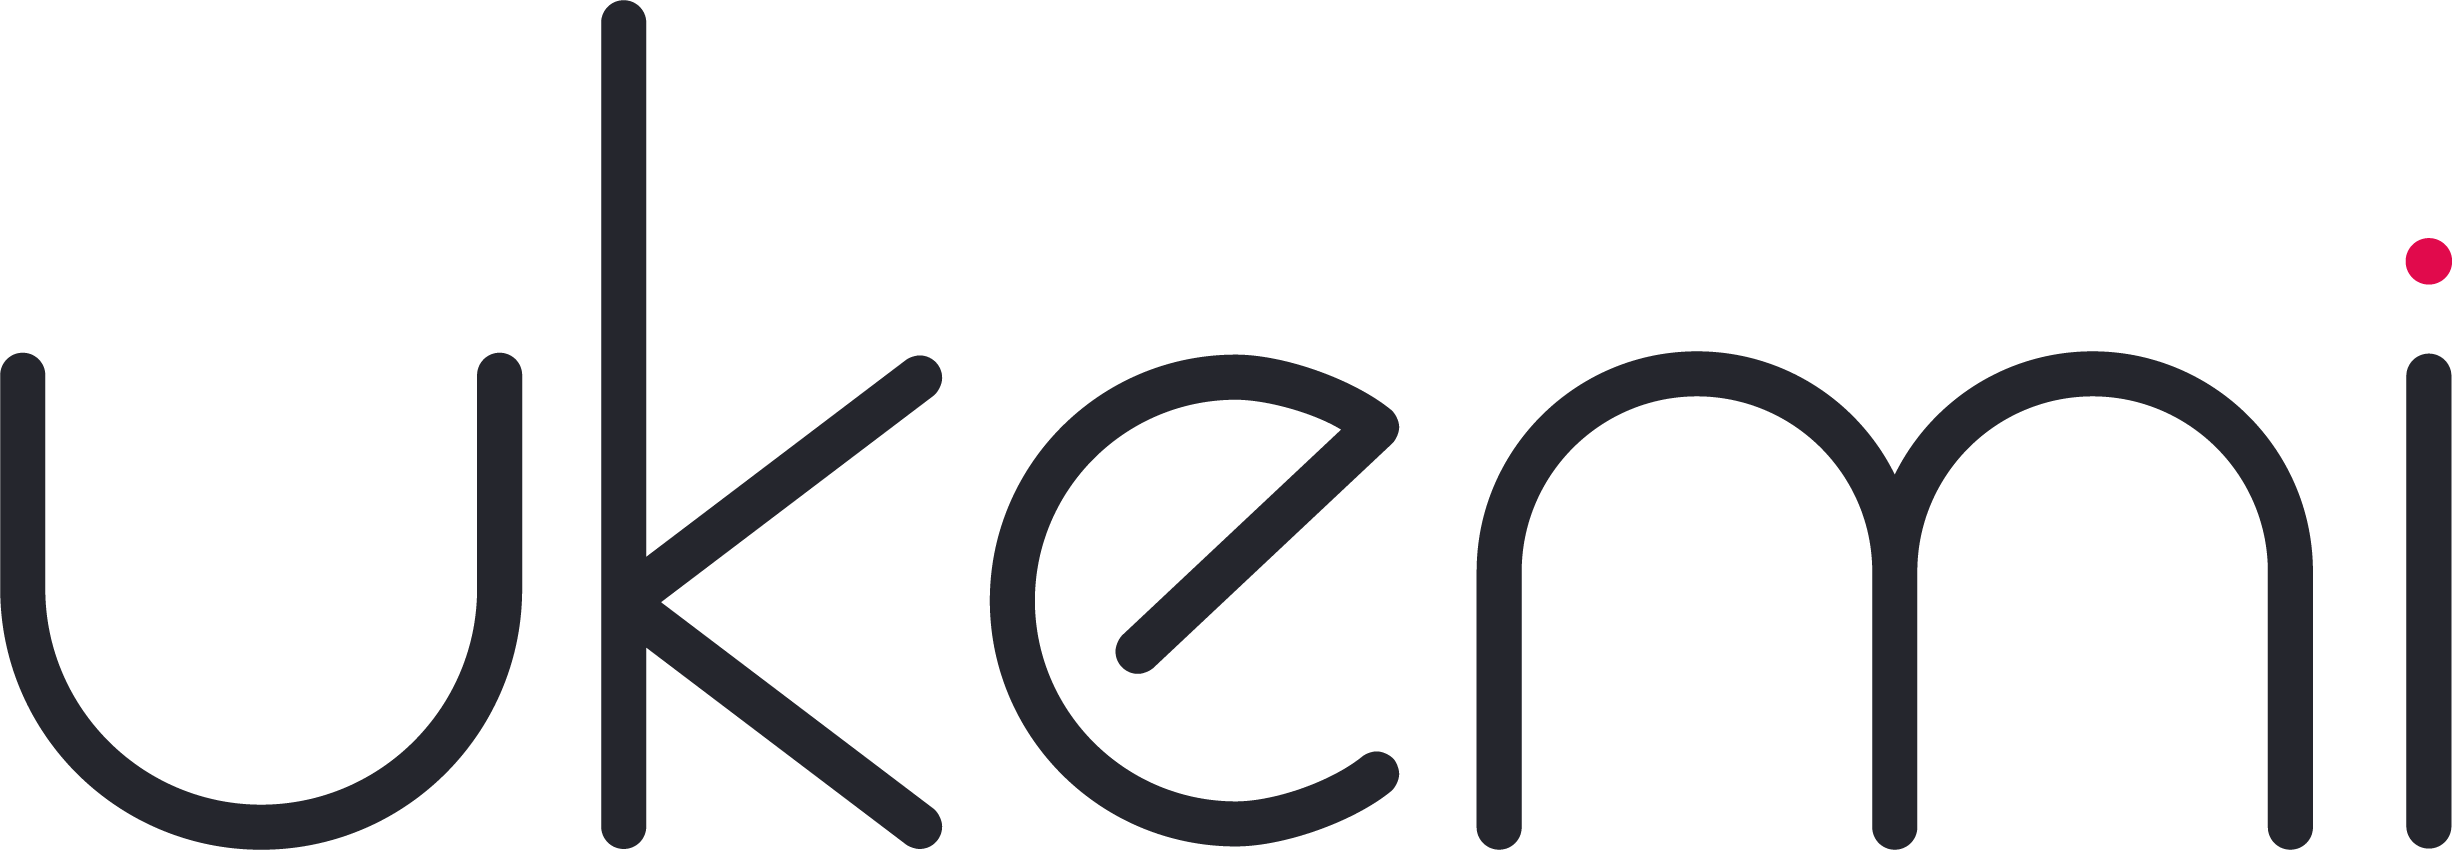 Ukemi Project text logo